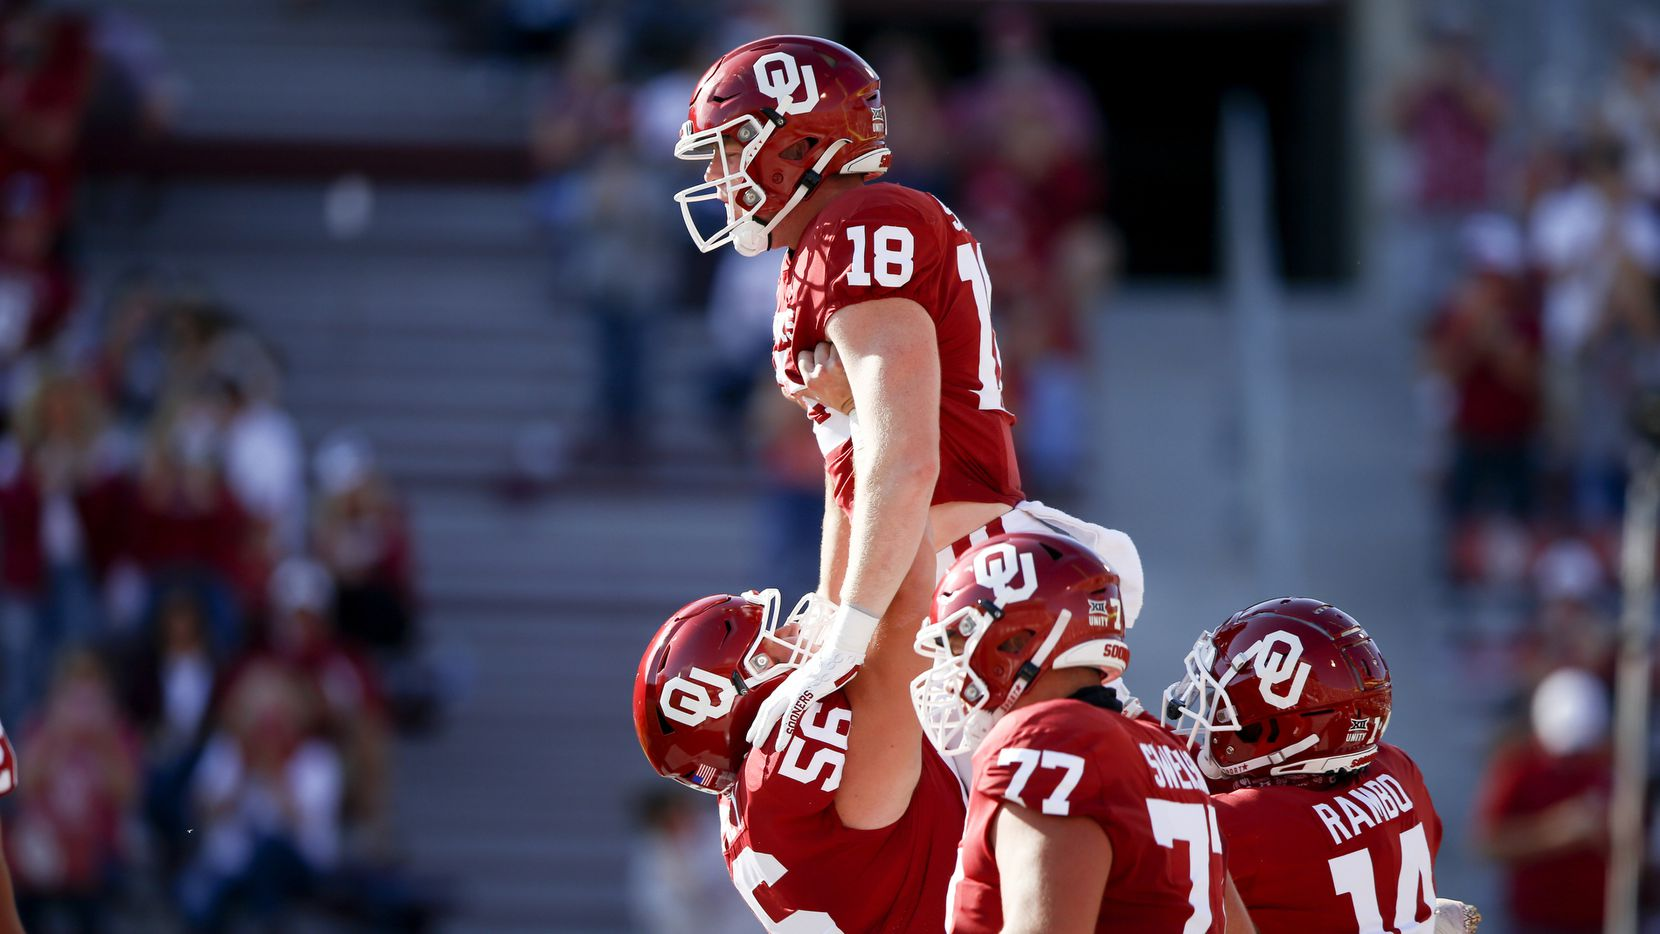 Oklahoma offensive lineman Creed Humphrey (56) lifts tight end Austin Stogner (18) after Stogner's touchdown reception against Kansas during an NCAA college football game in Norman, Okla., Saturday, Nov. 7, 2020. (Ian Maule/Tulsa World via AP)